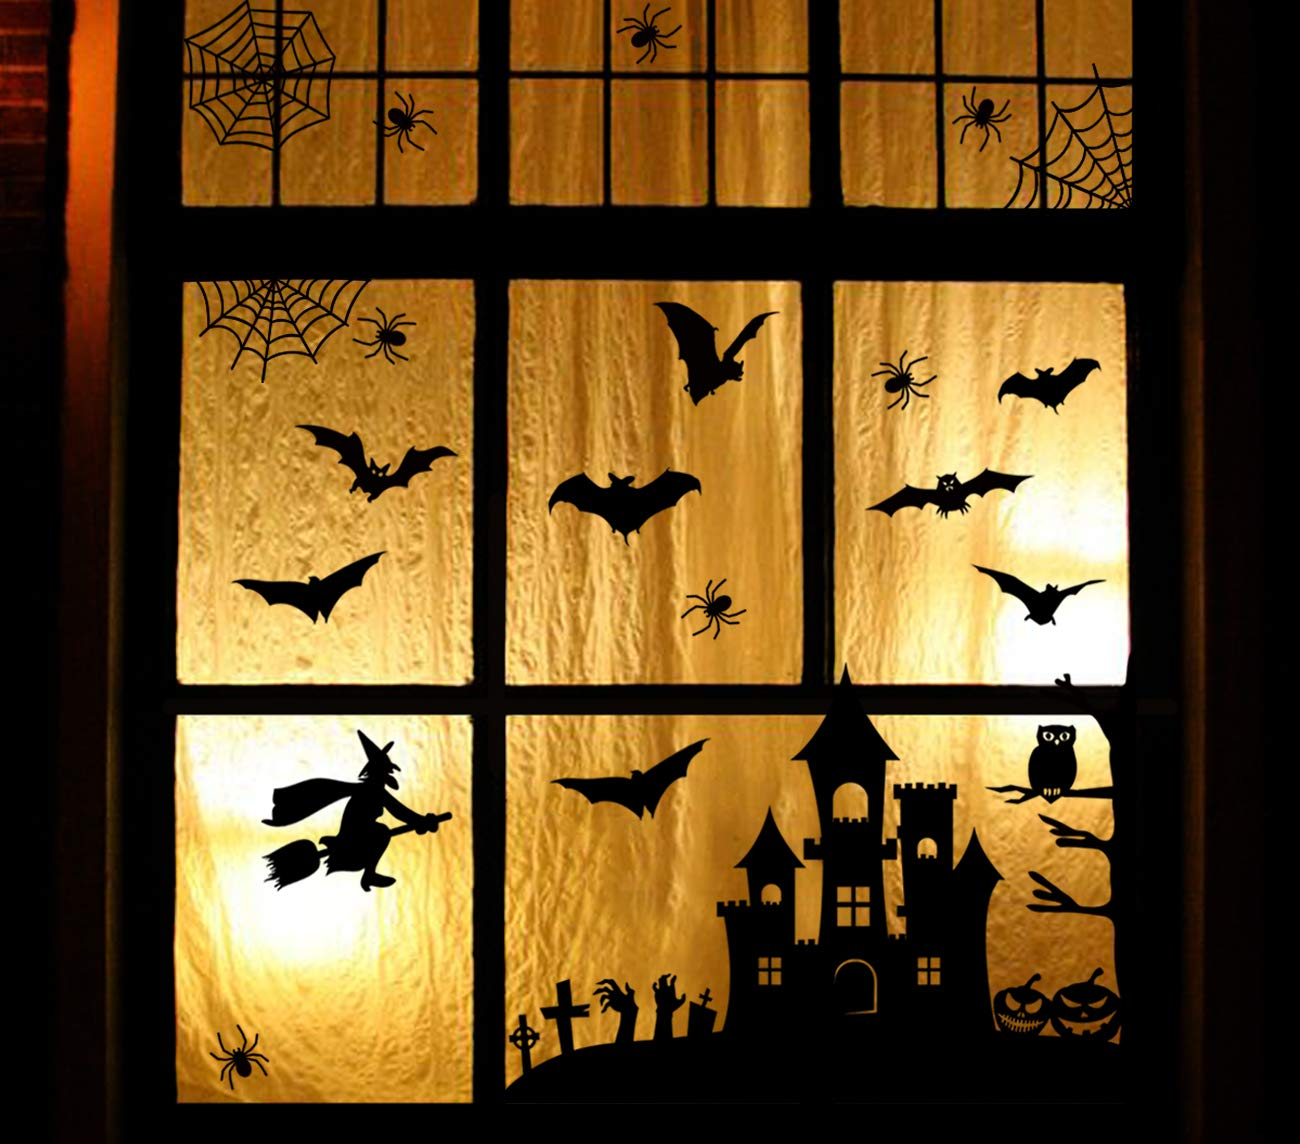 3omething New Halloween Window Clings Decorations Spider Web